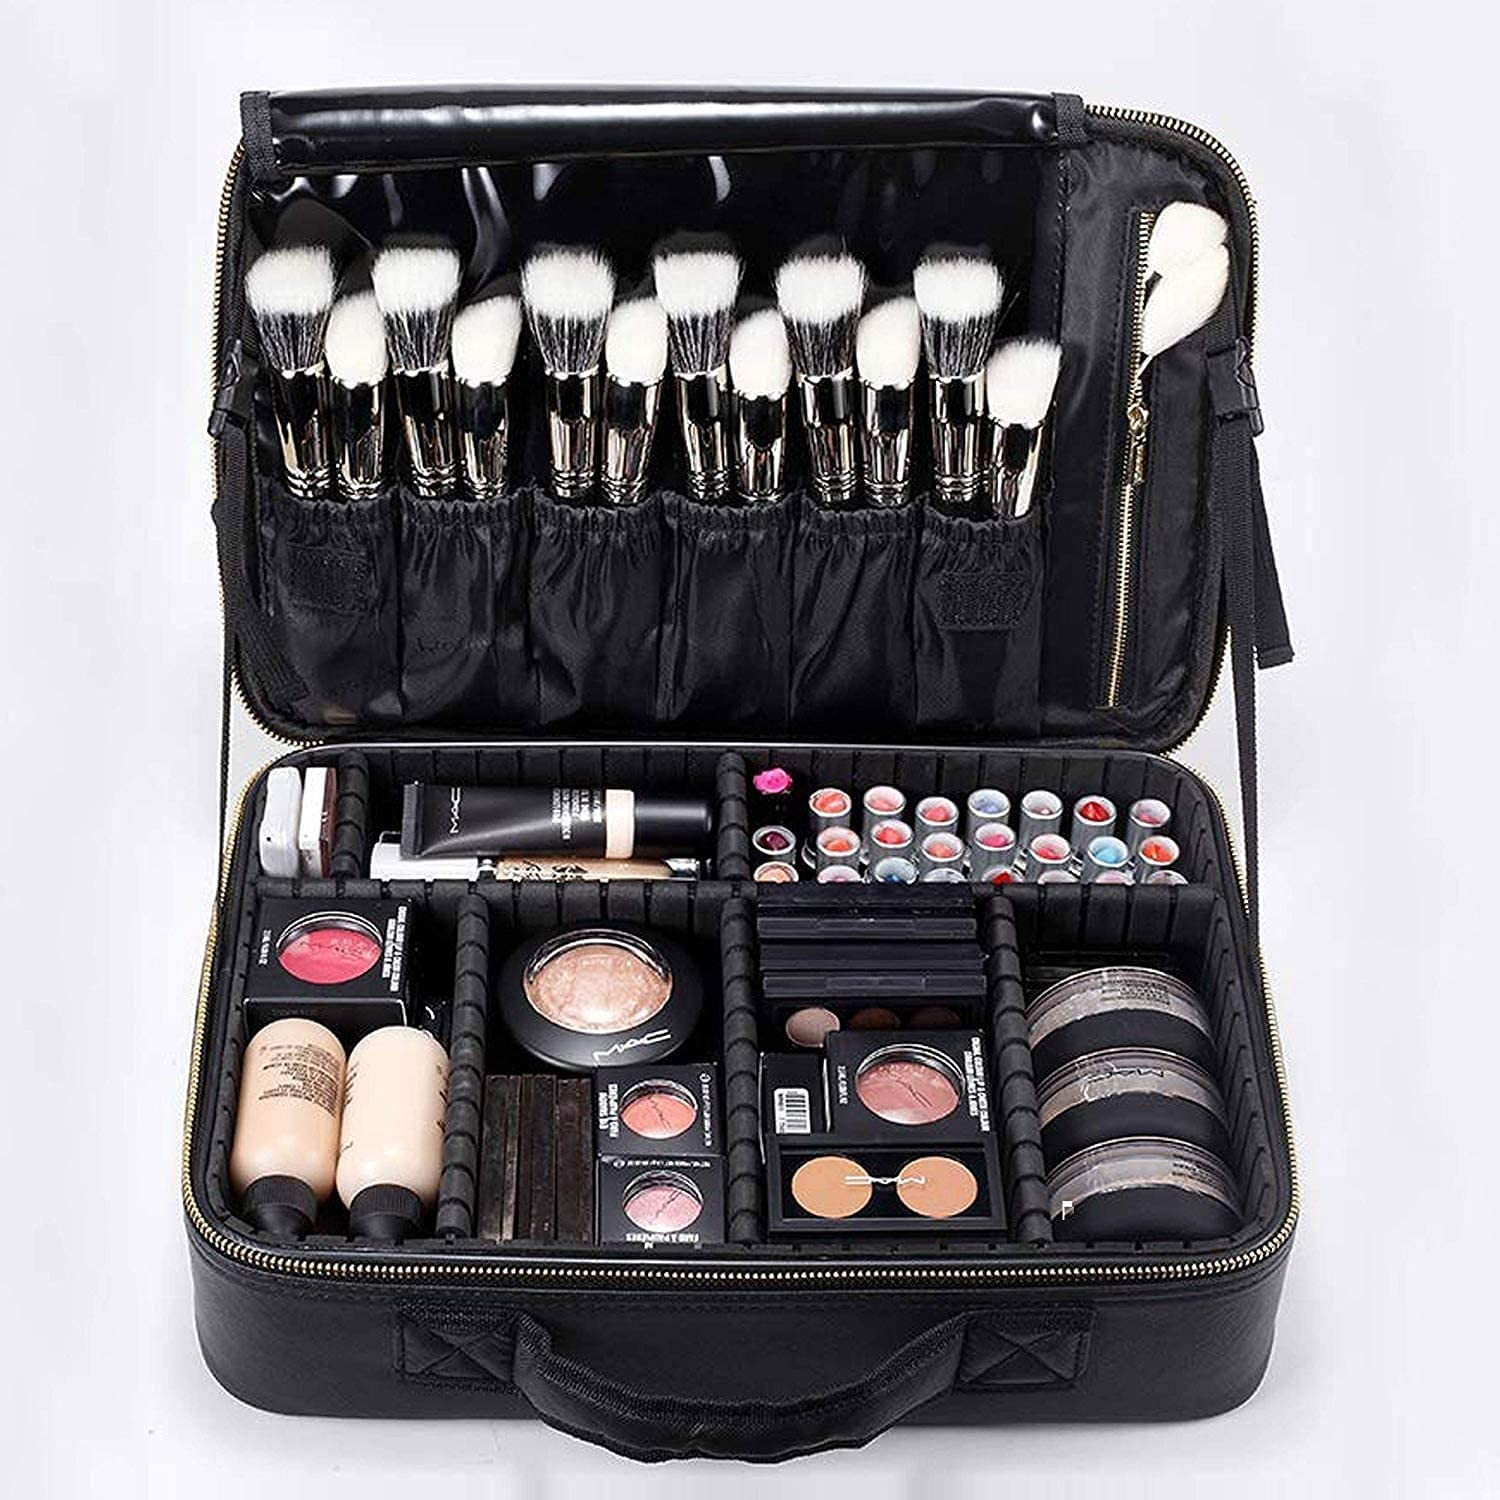 Archile Max 61% OFF Makeup Bag Case Train Online limited product Professional Portable